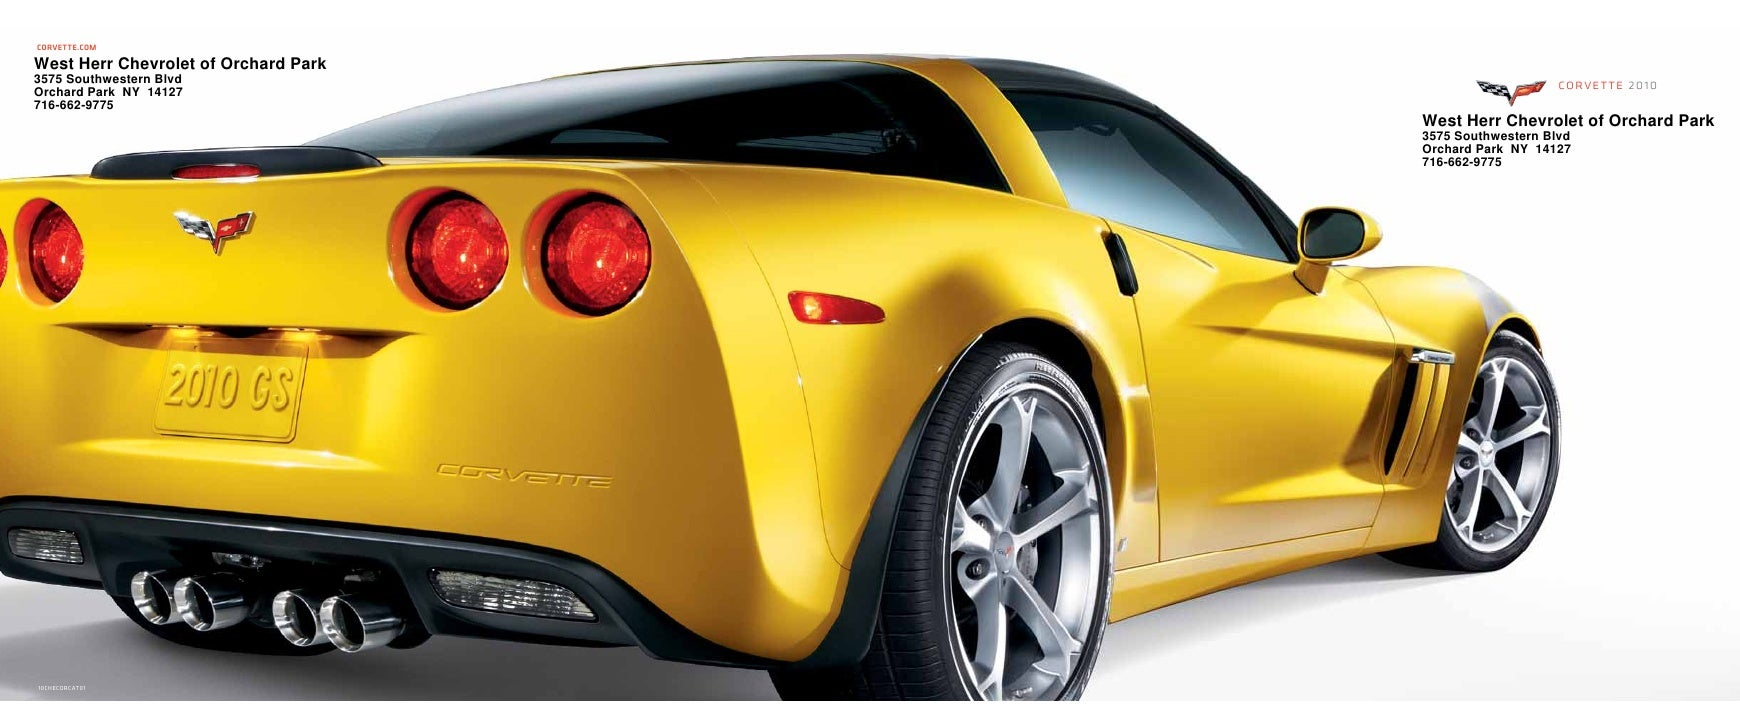 CORVETTE.COM  West Herr Chevrolet of Orchard Park 3575 Southwestern Blvd                                    corvette 2010 ...